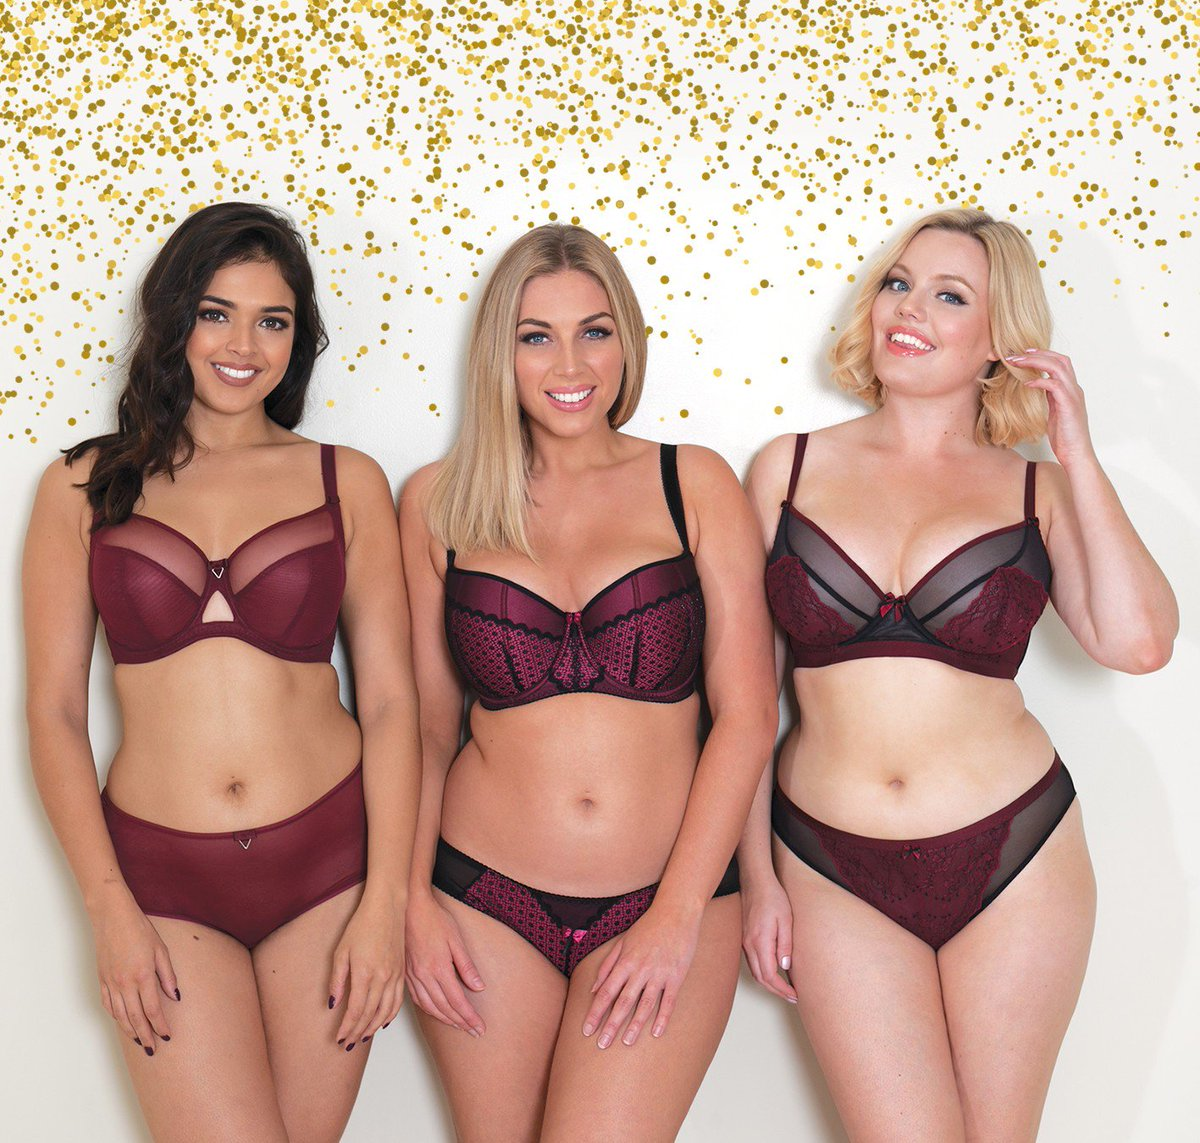 9a225f50a57 Visit #curvykate at #thedeerfieldshow on January 13 & 14. | #swim #bra # plussize #fashion #stylepic.twitter.com/uCoXsXj7zd